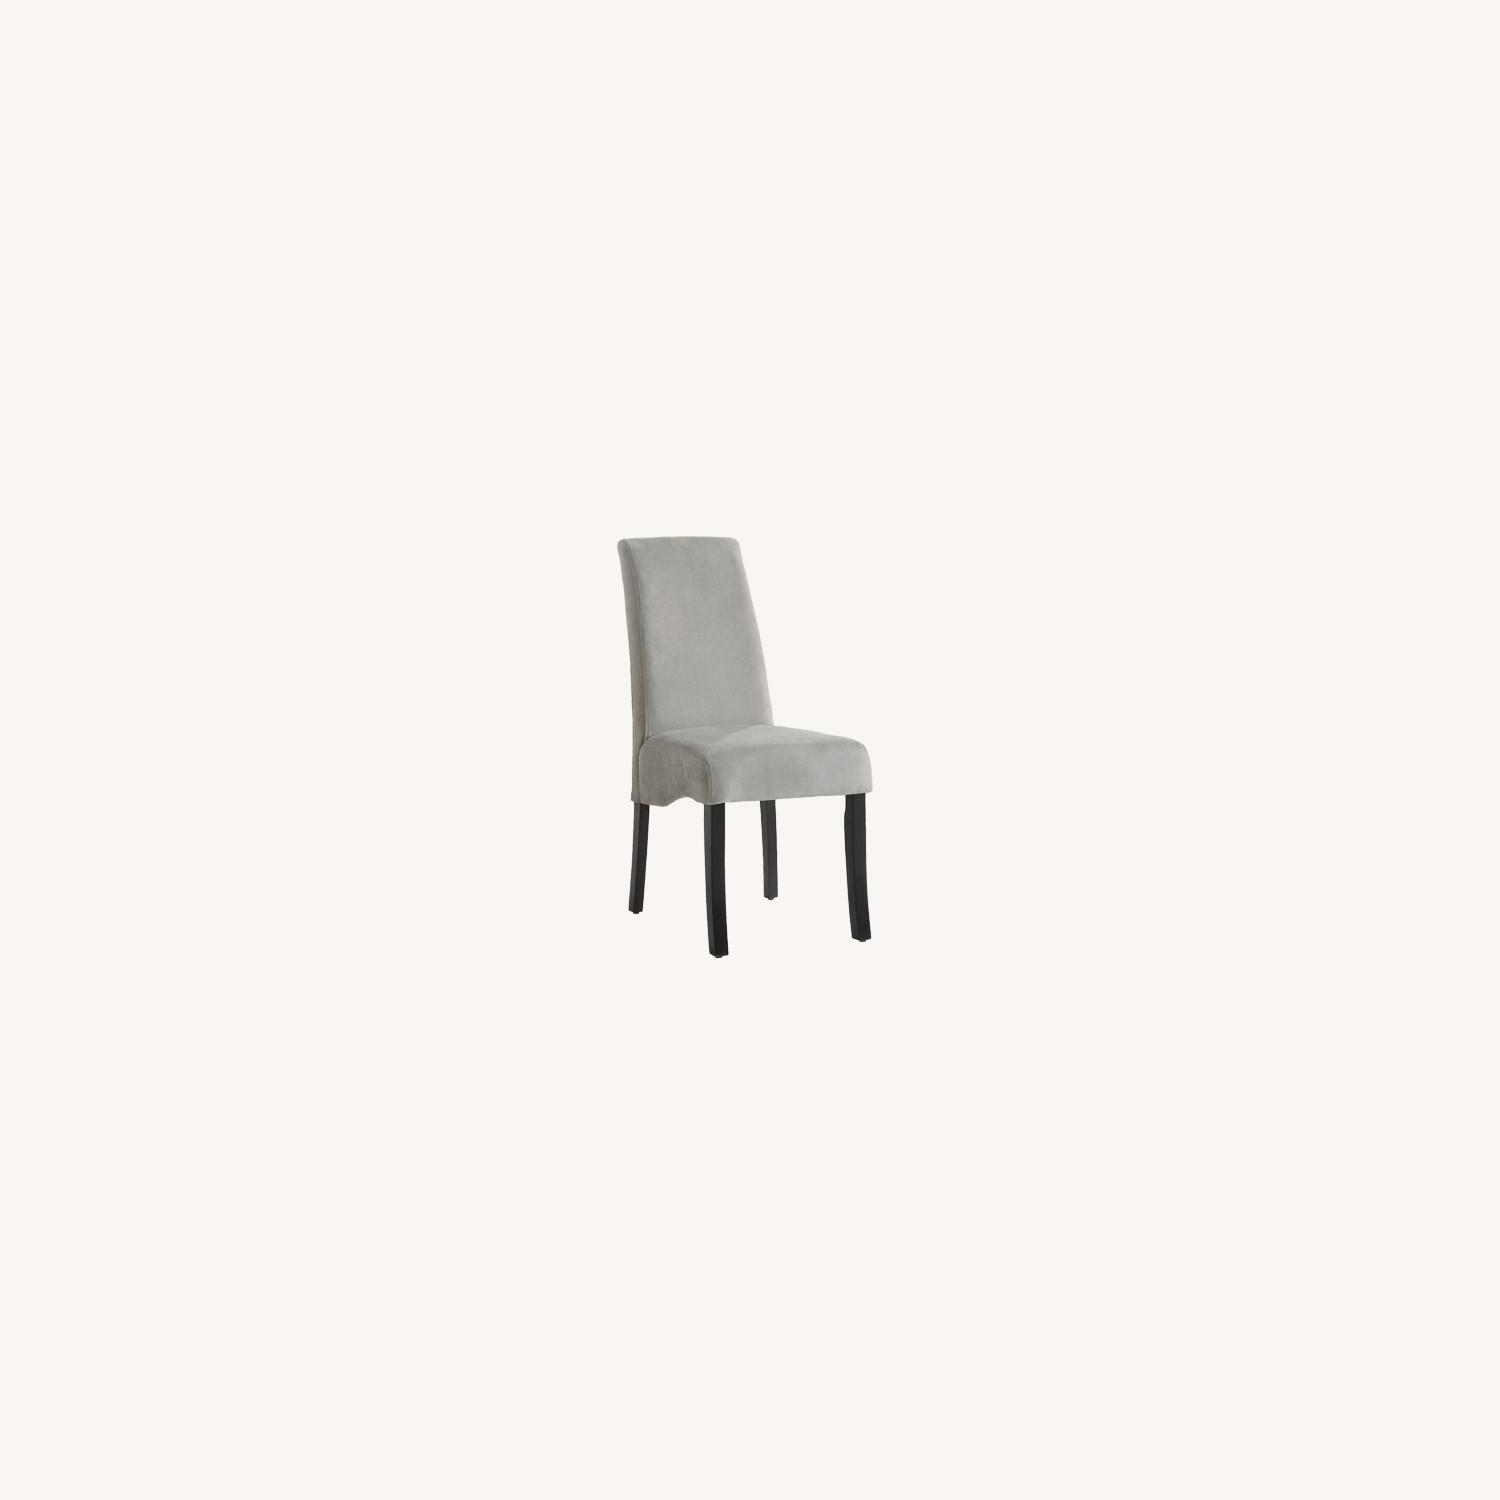 Elegant Side Chair In A Grey Fabric W Flared Back - image-4